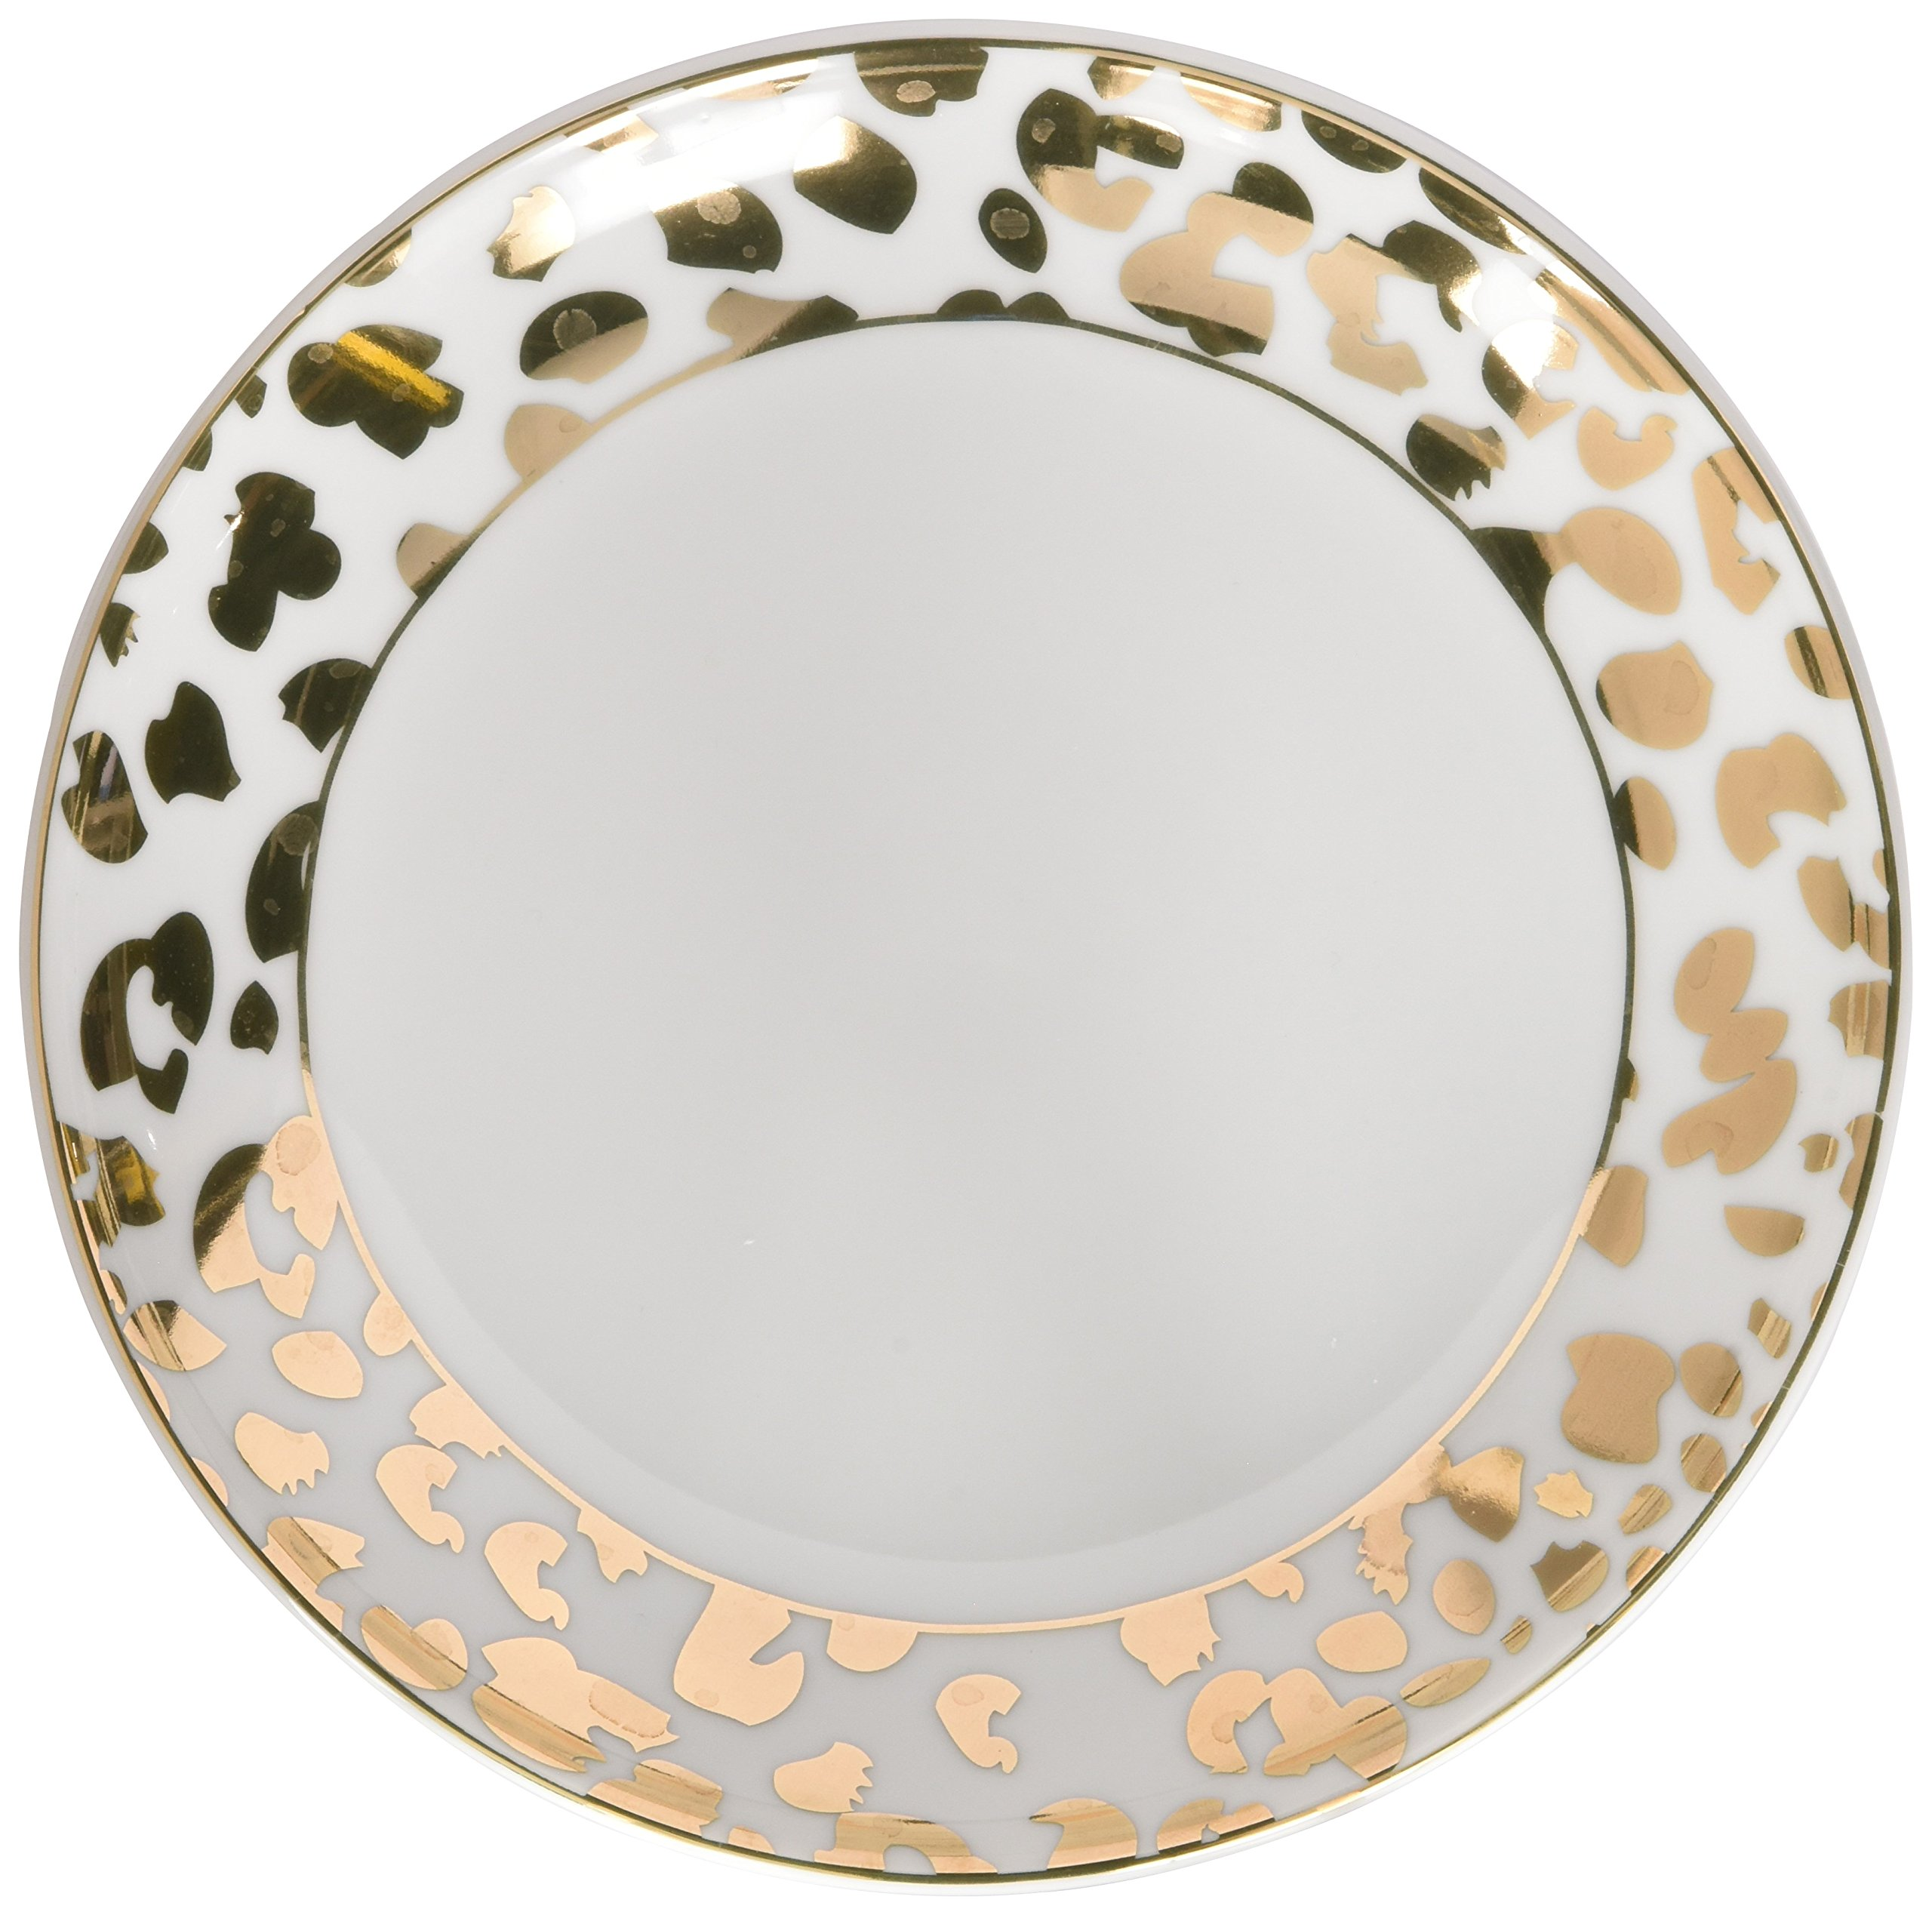 8 Oak Lane EC003LEP Leopard Print Porcelain Dessert Plate, 7'', Gold by 8 Oak Lane (Image #2)